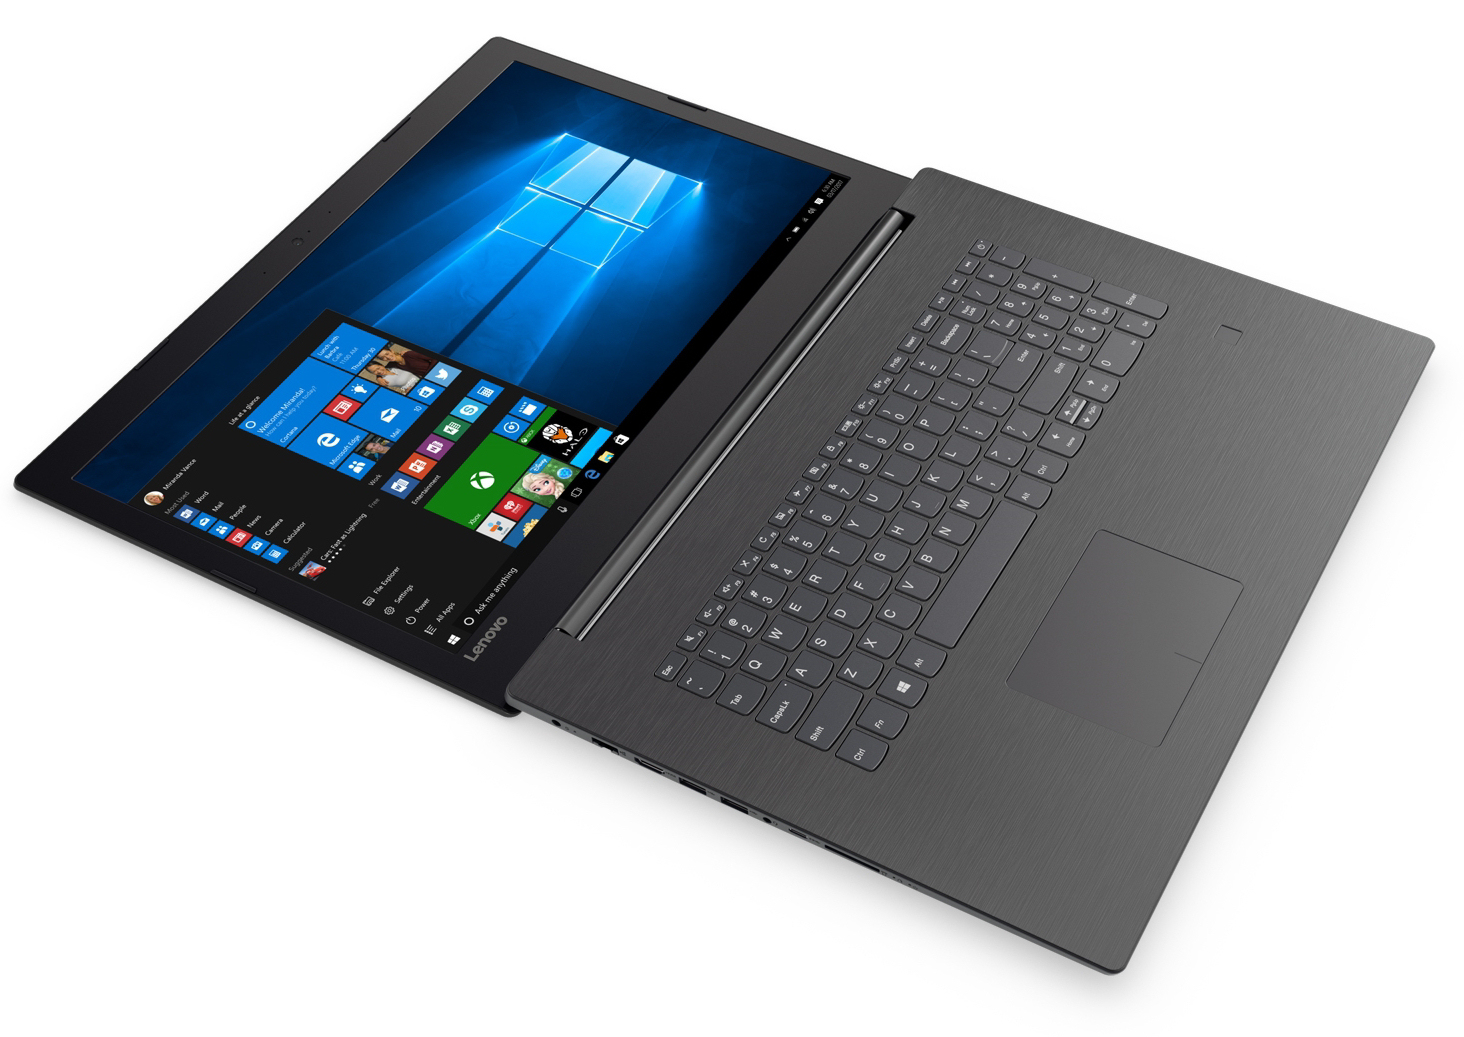 Courte critique du PC portable Lenovo IdeaPad 320-17AST (E2-9000, HD+)